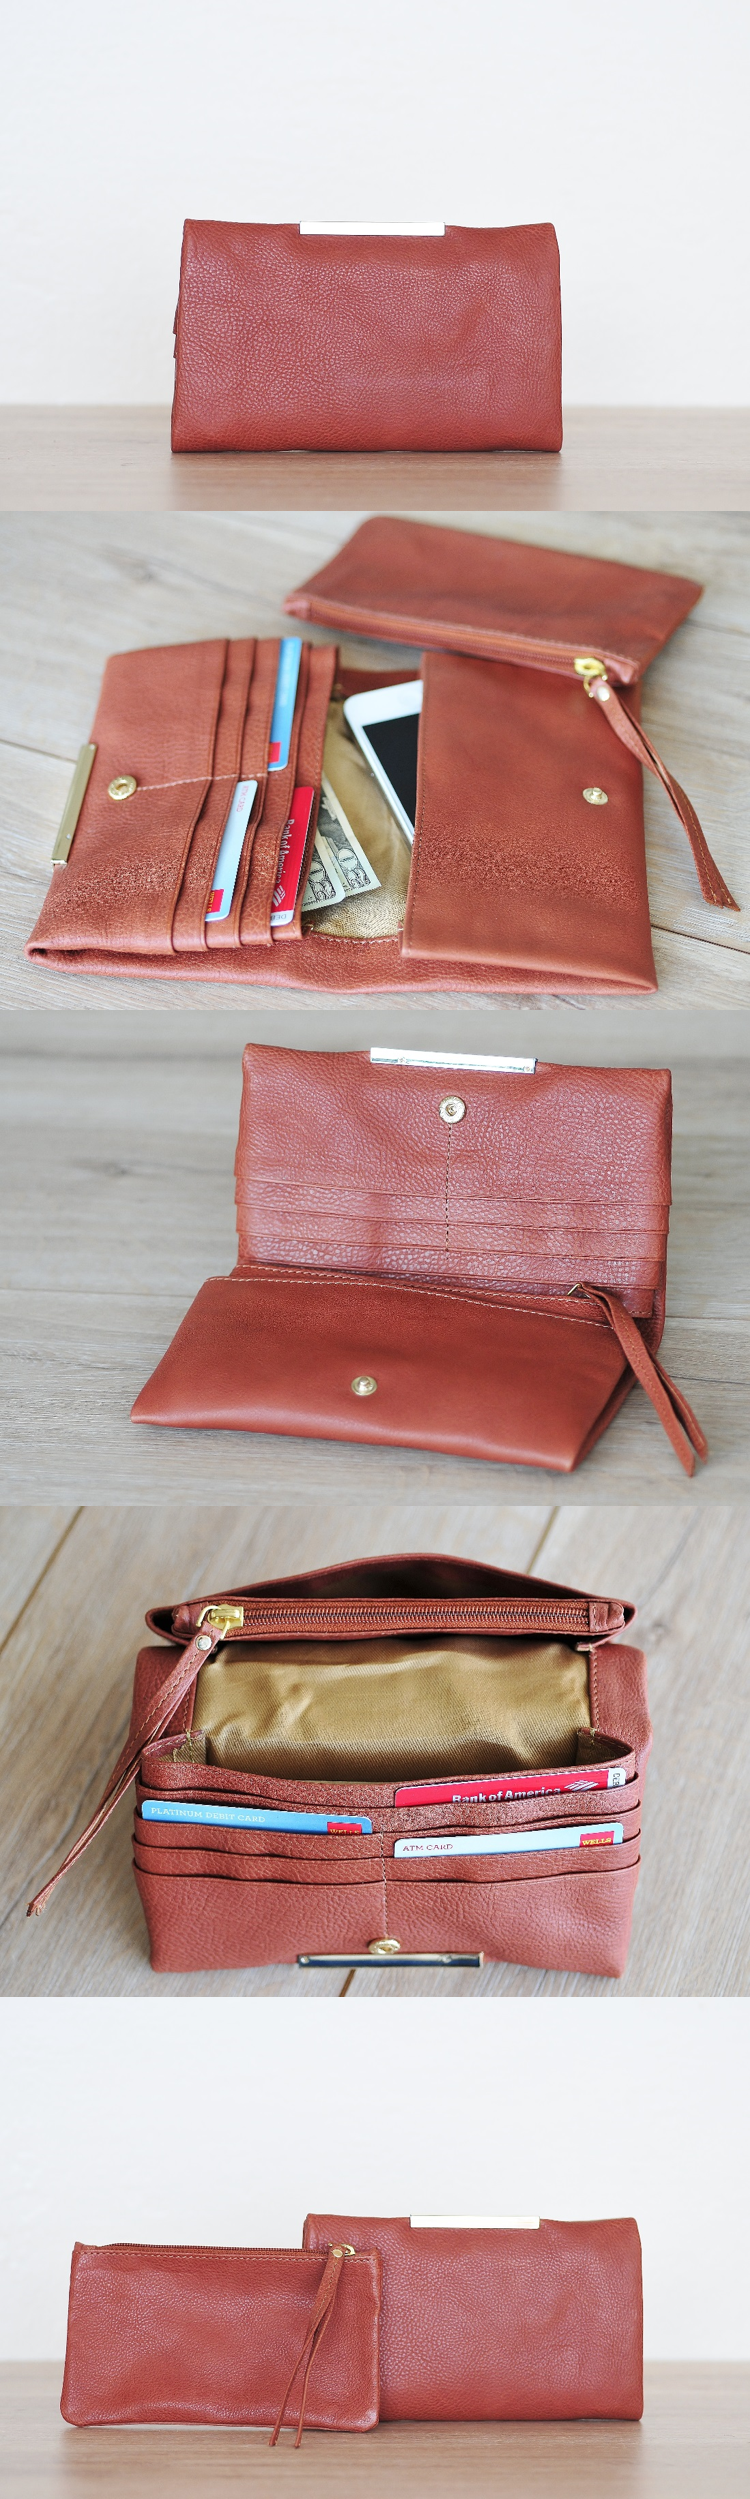 Delicate And Soft This Ingenious Women 39 S Wallet By Era81 Offers A Generous Interior And